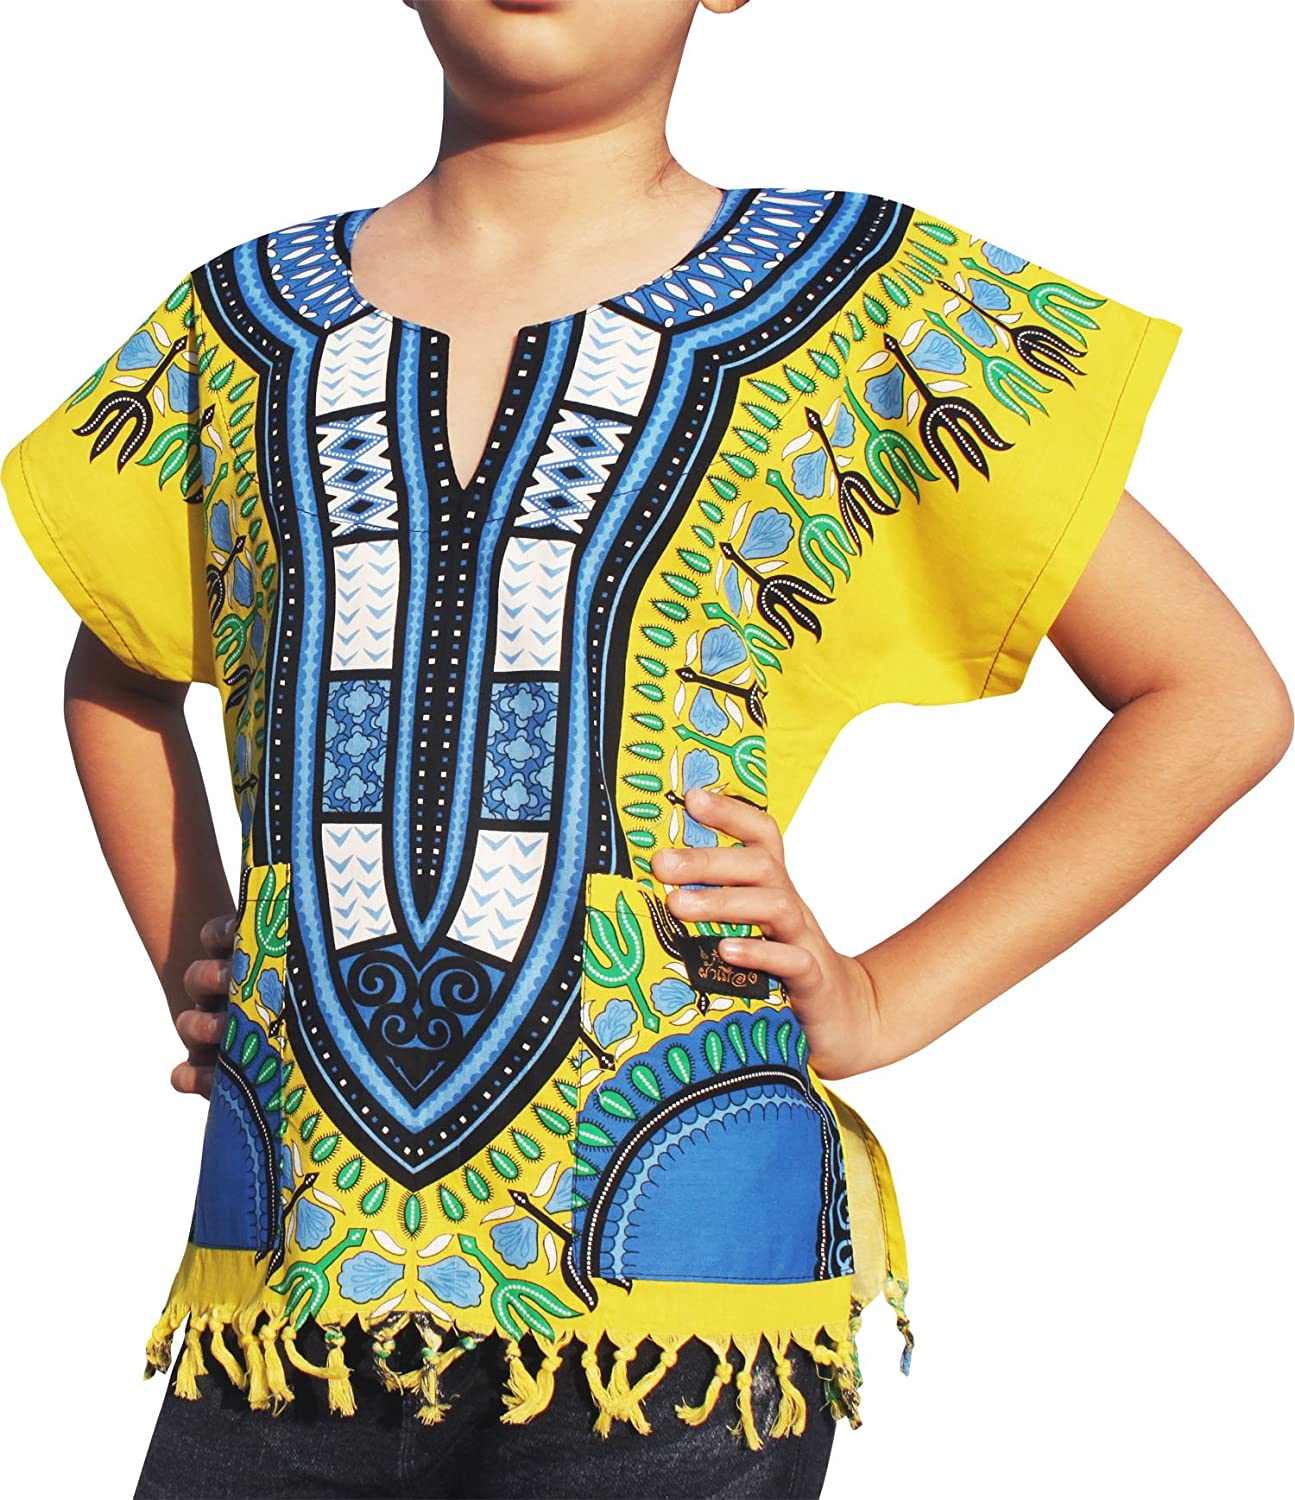 Raan Pah Muang RaanPahMuang Cotton Childs Dashiki Shirt Tassels Pockets Bold Colours variant36050AMZ